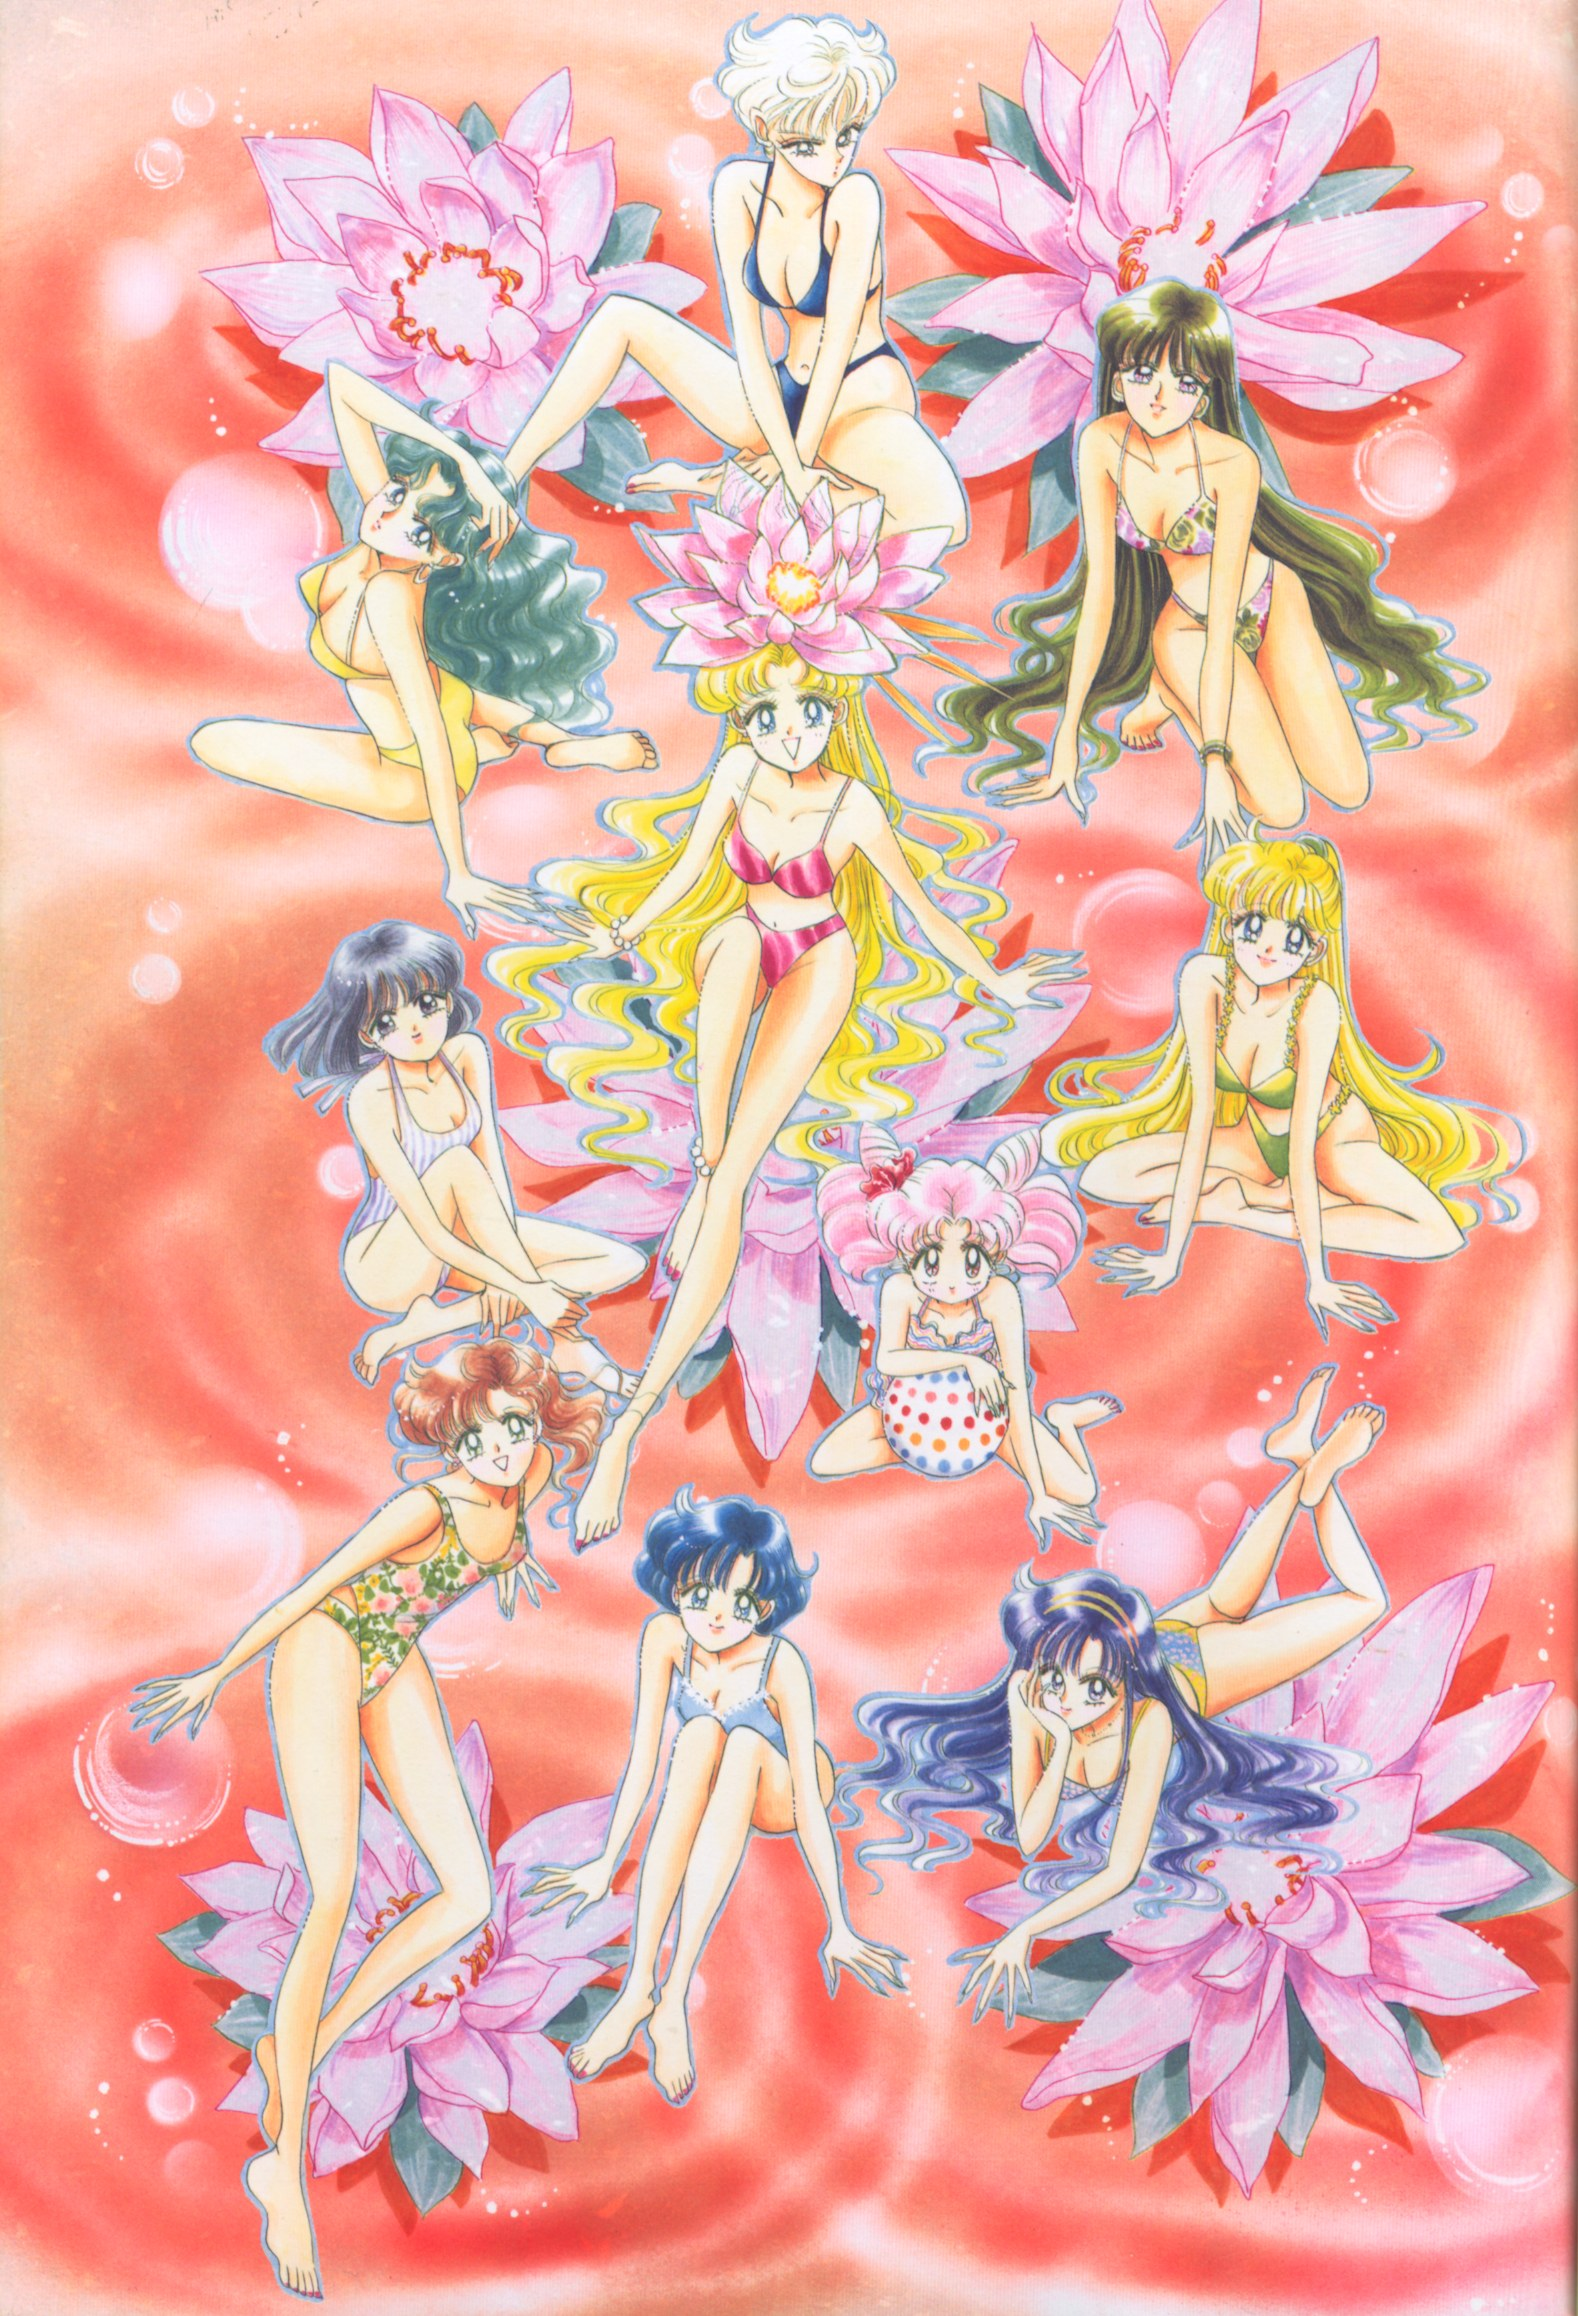 sailormoon artbook 4 11